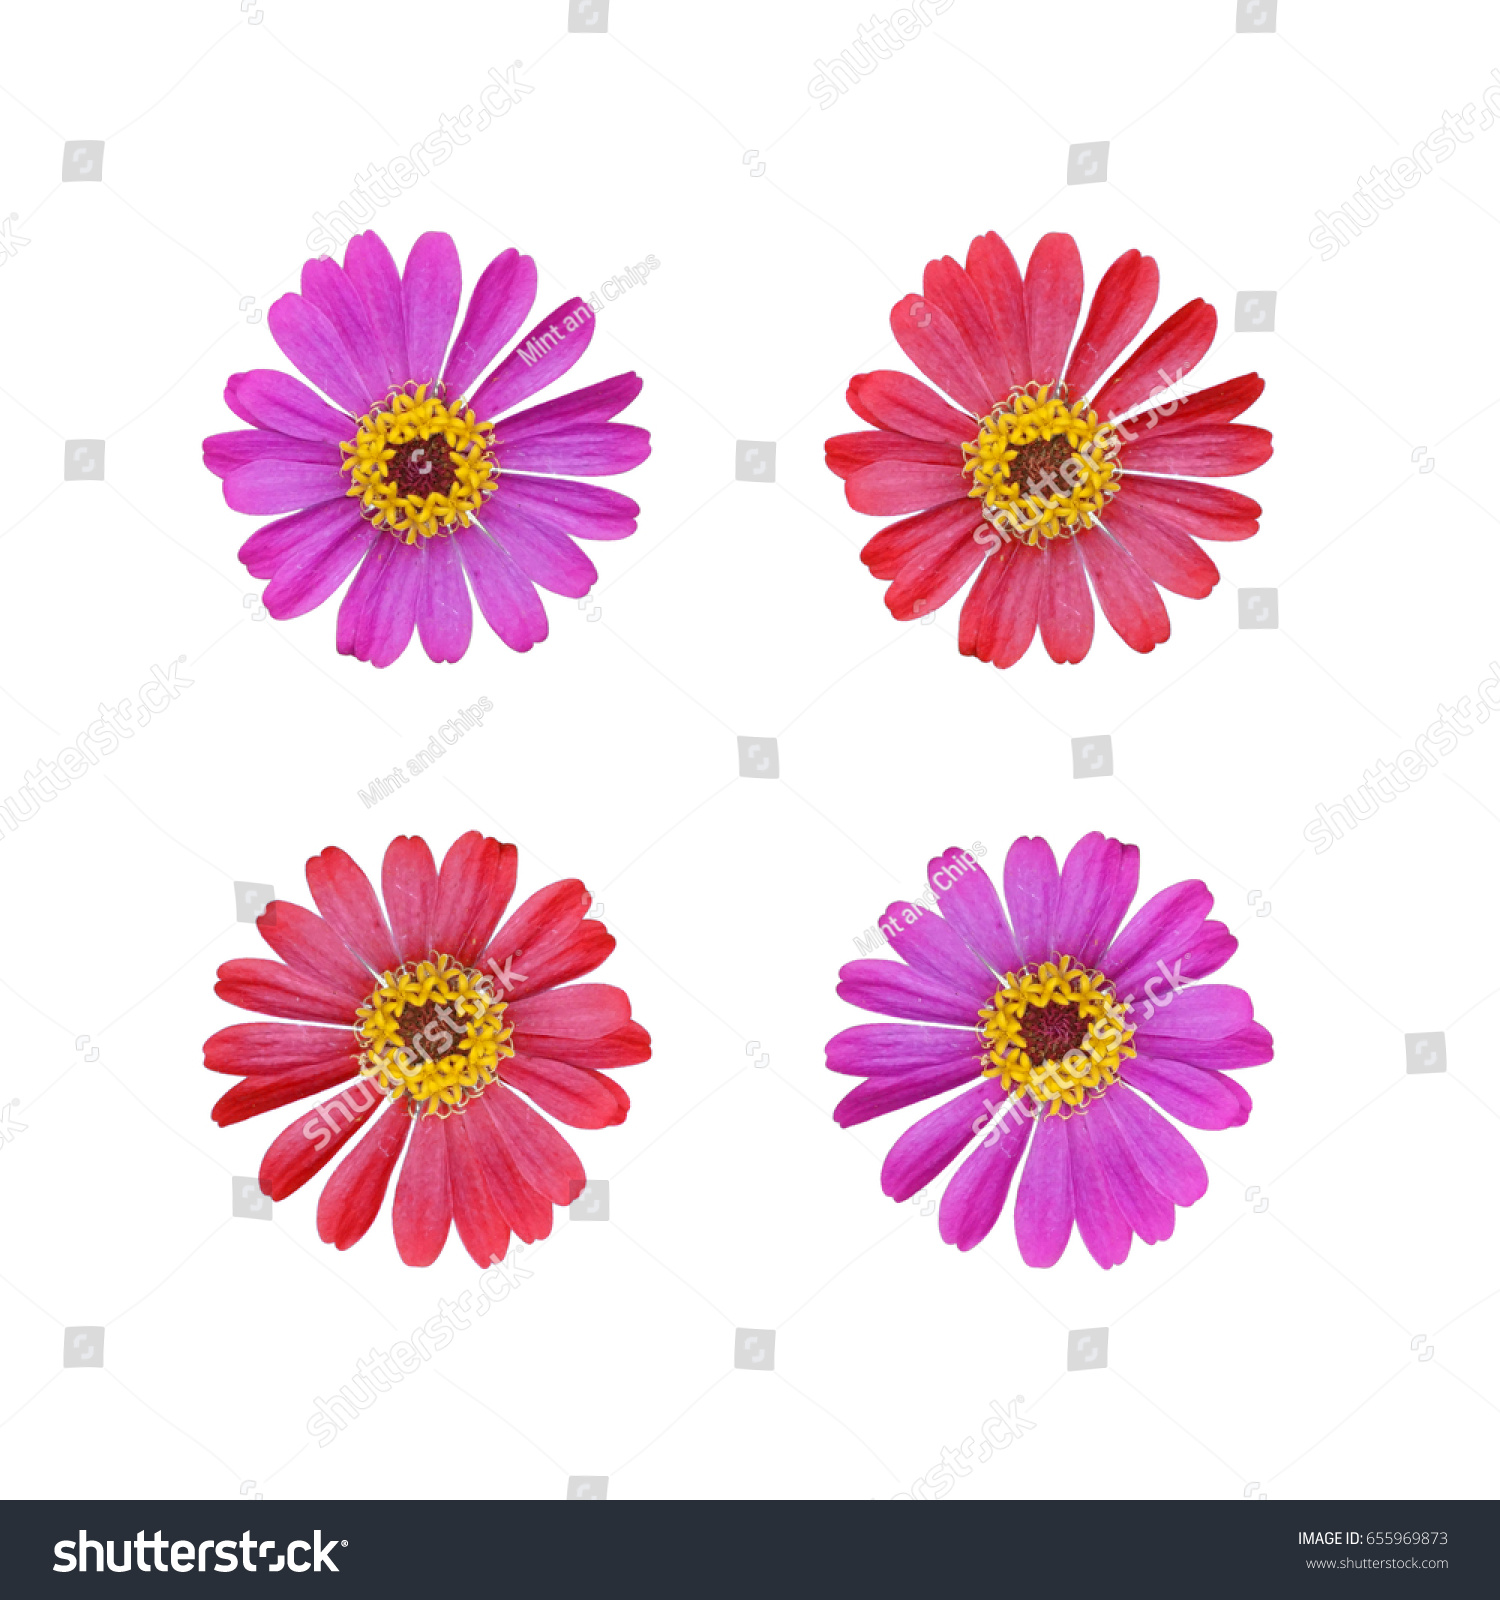 Separate pink red daisy flowers isolated stock photo edit now separate pink and red daisy flowers isolated on white background izmirmasajfo